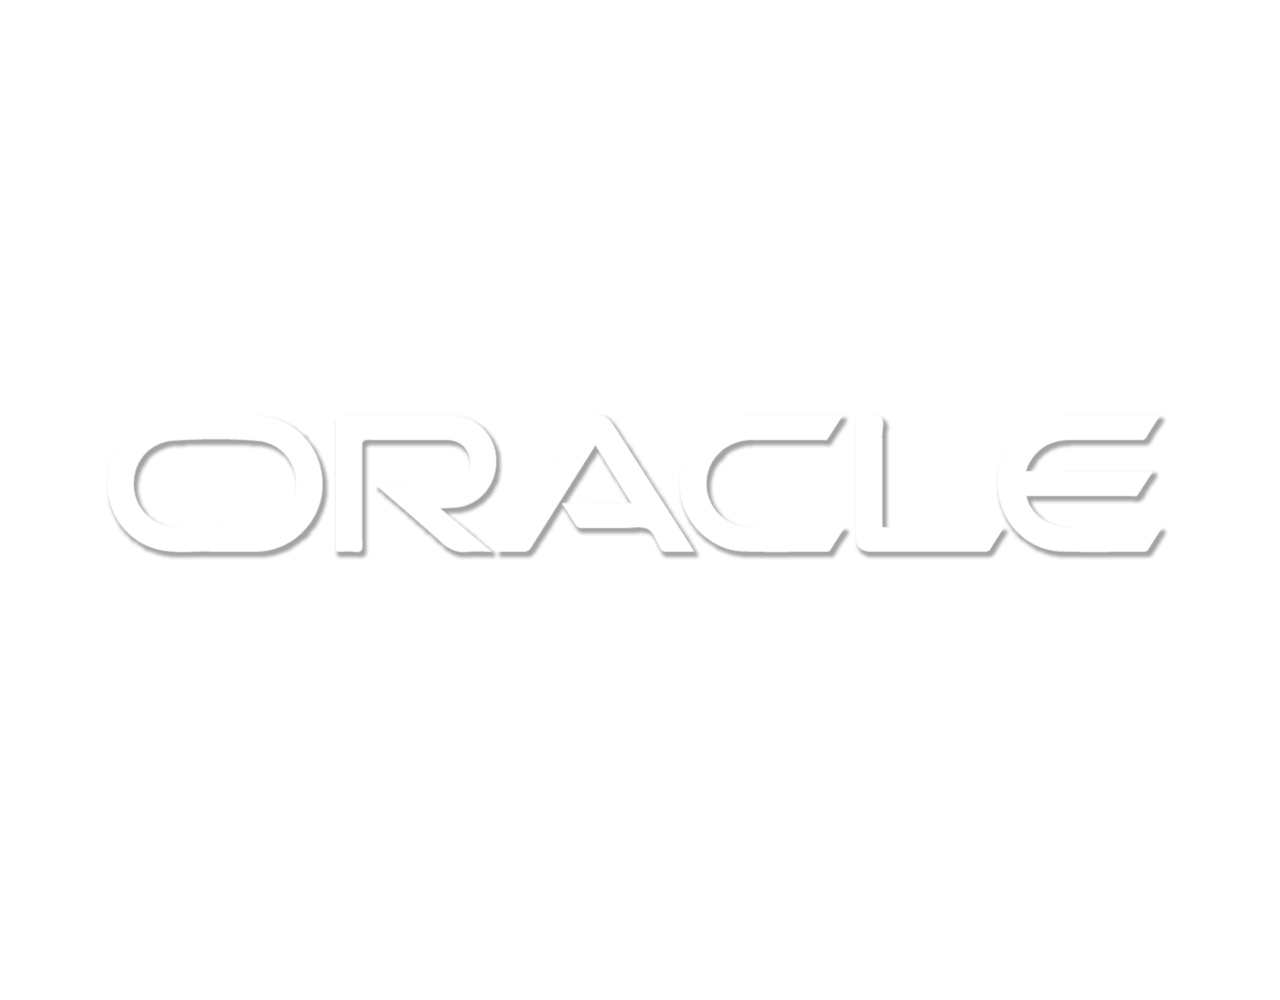 Logo Oracle Transparent Full Stack Page Metas